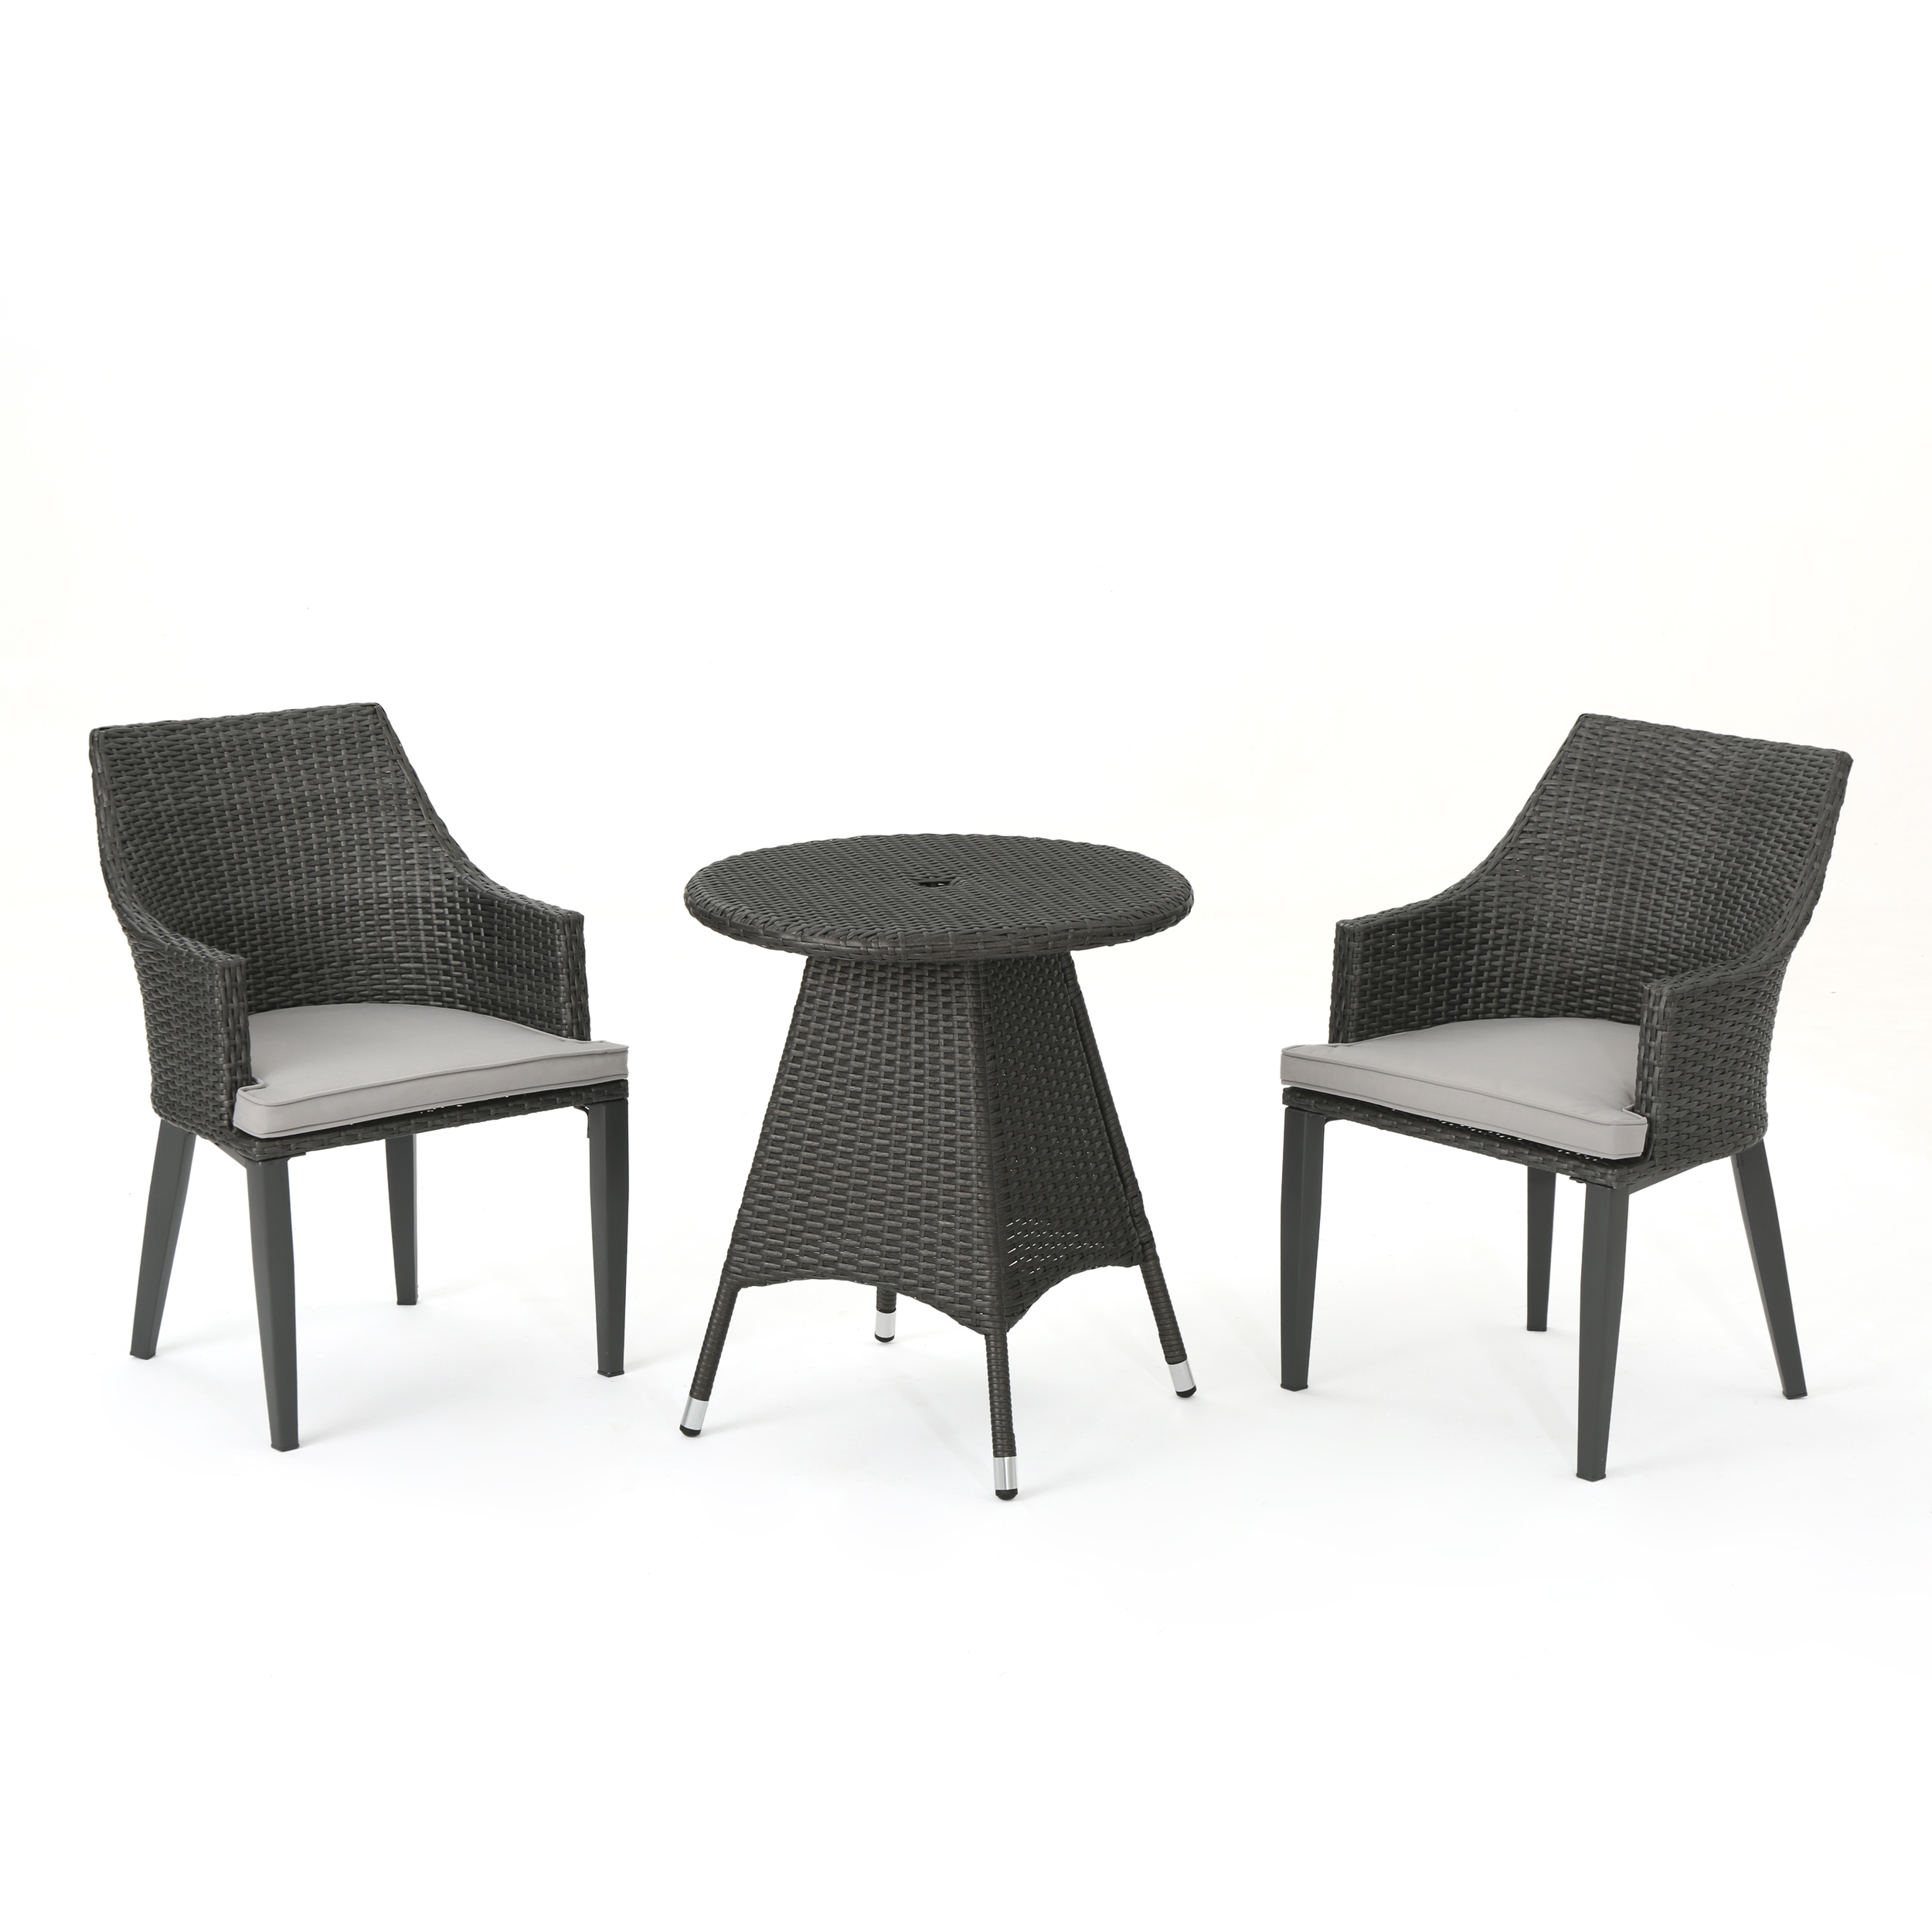 Leeward Outdoor 3 Piece Wicker Round Bistro Set with Weather Resistant Cushions, Grey and Light Grey